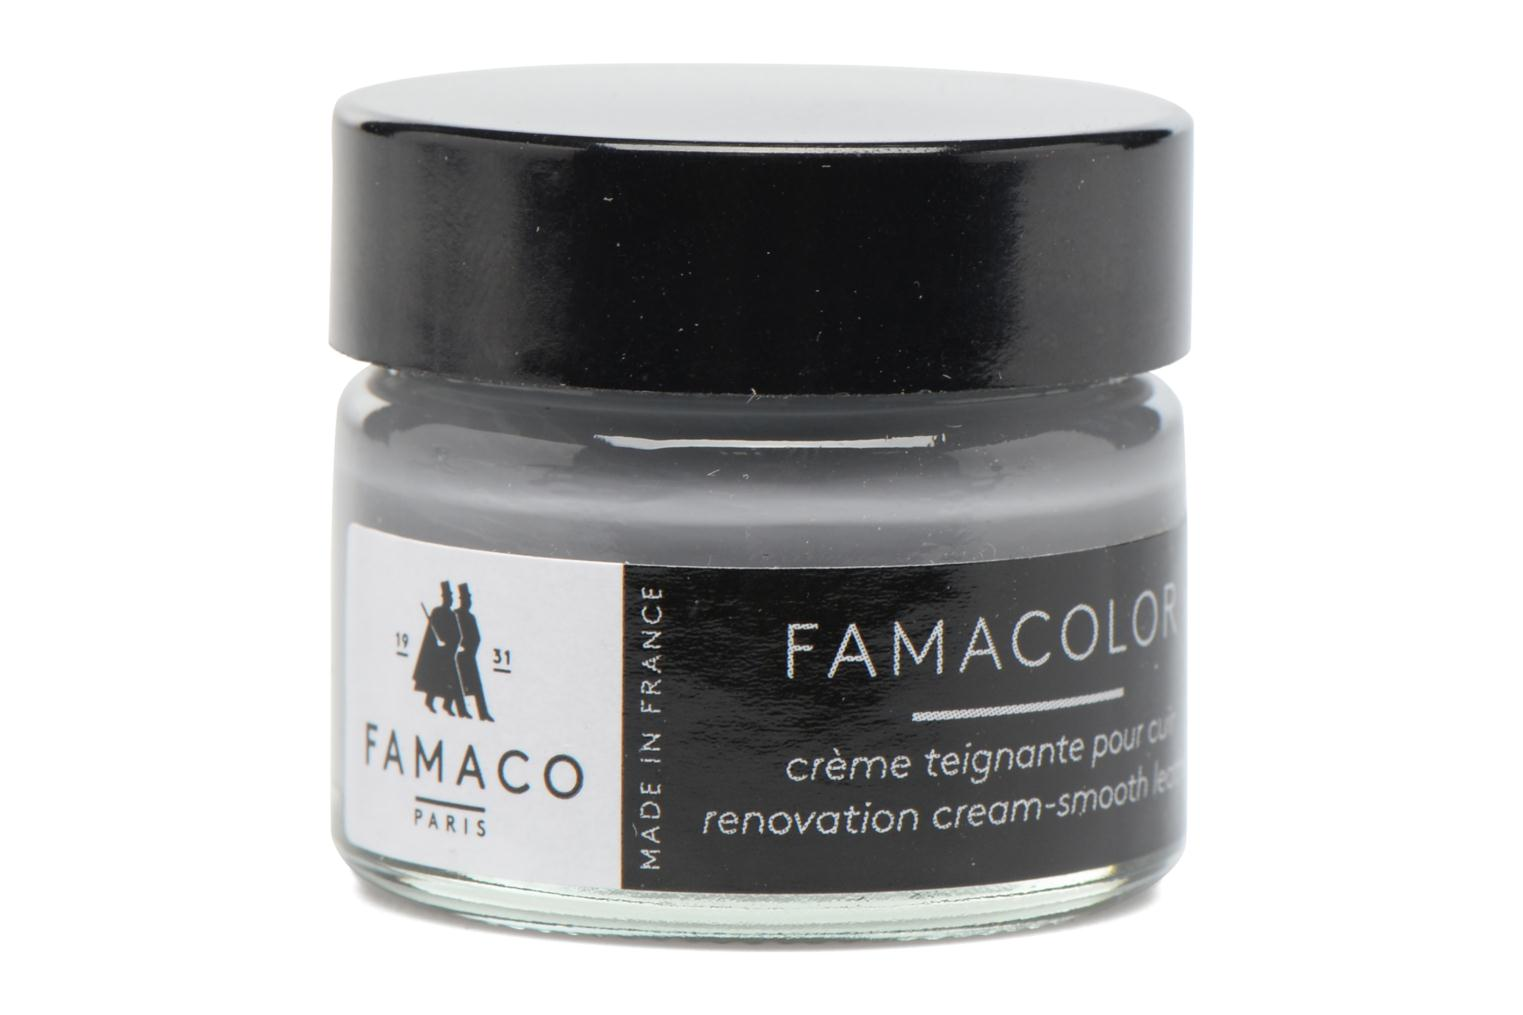 Teinture solide famacolor 15ml Gris